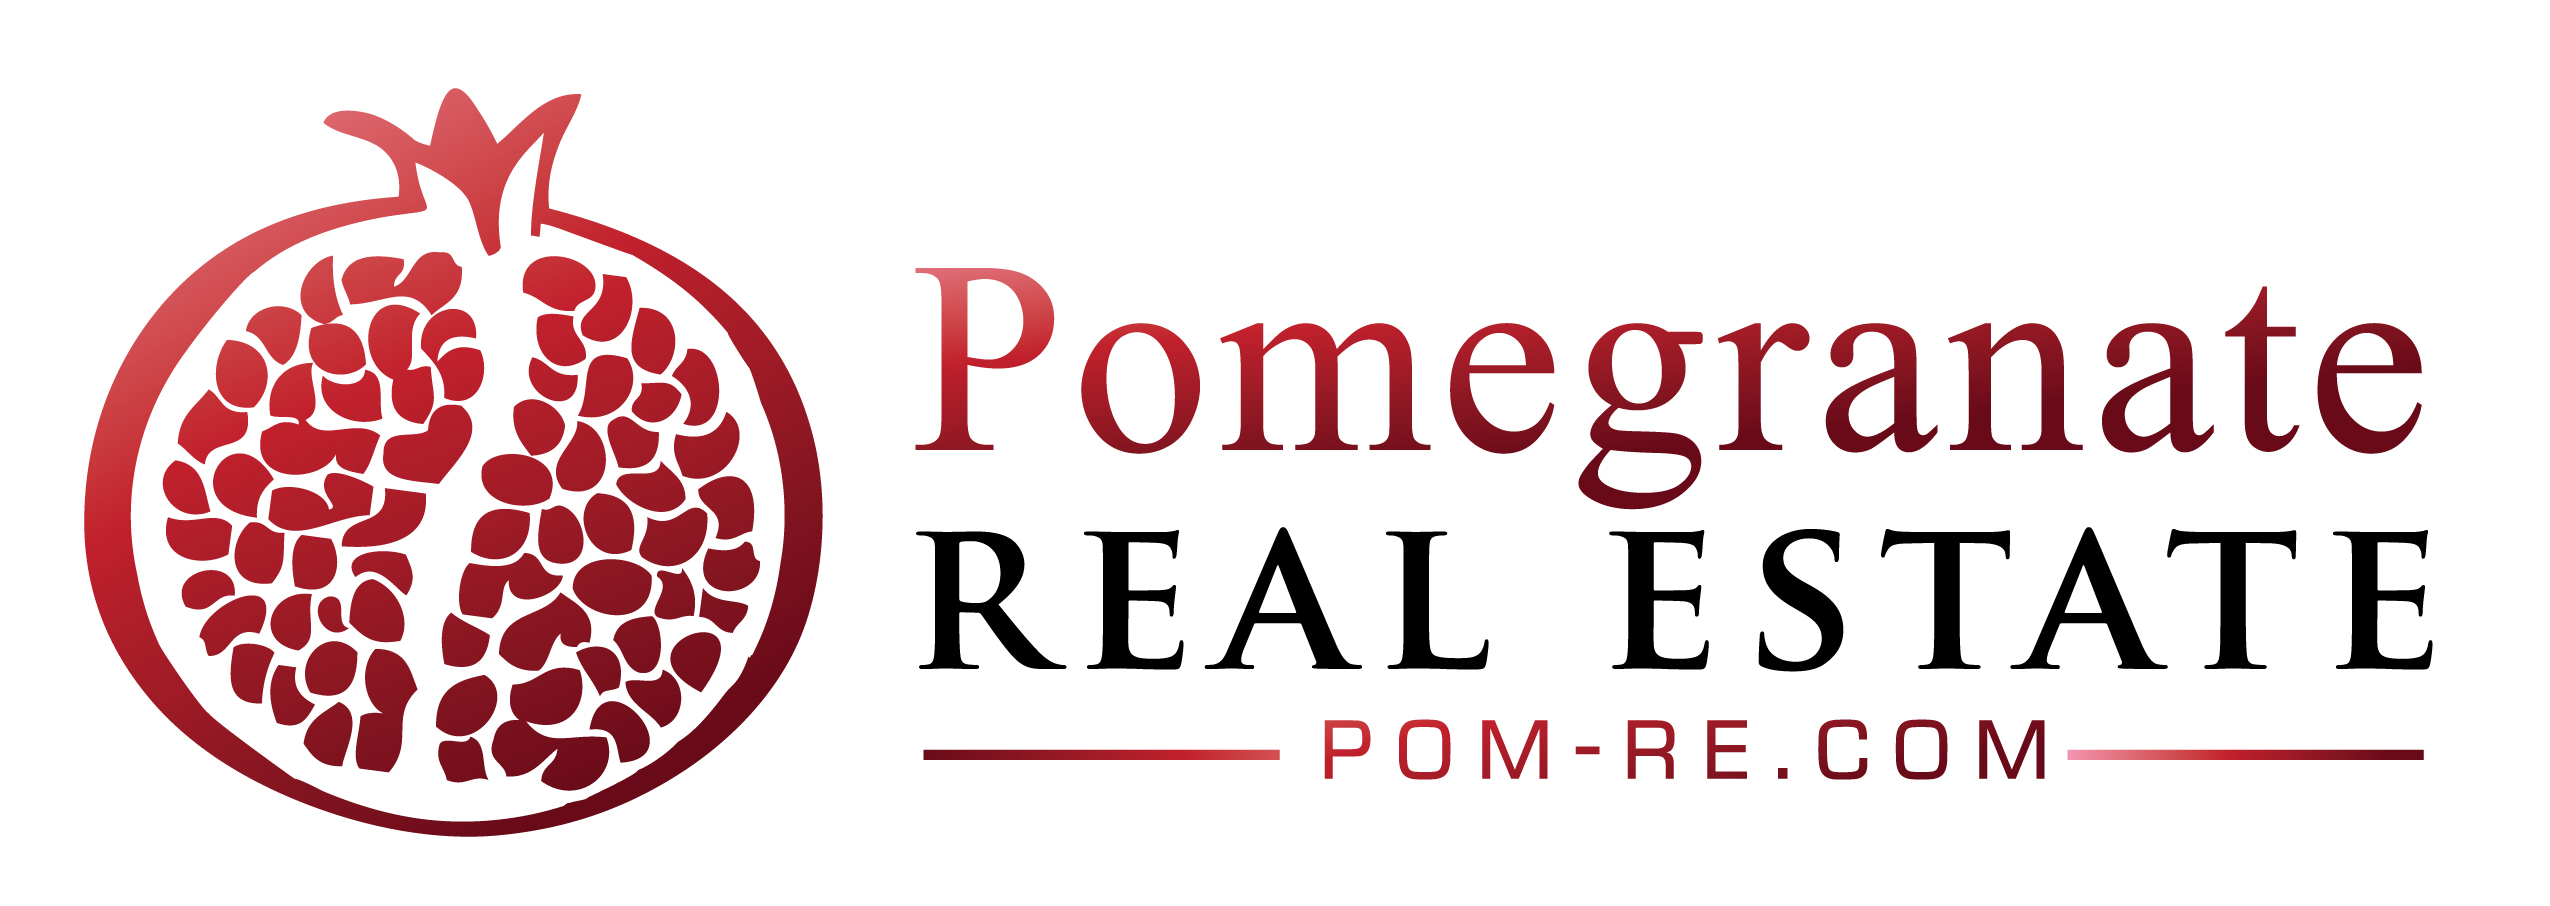 Pomegranate Real Estate